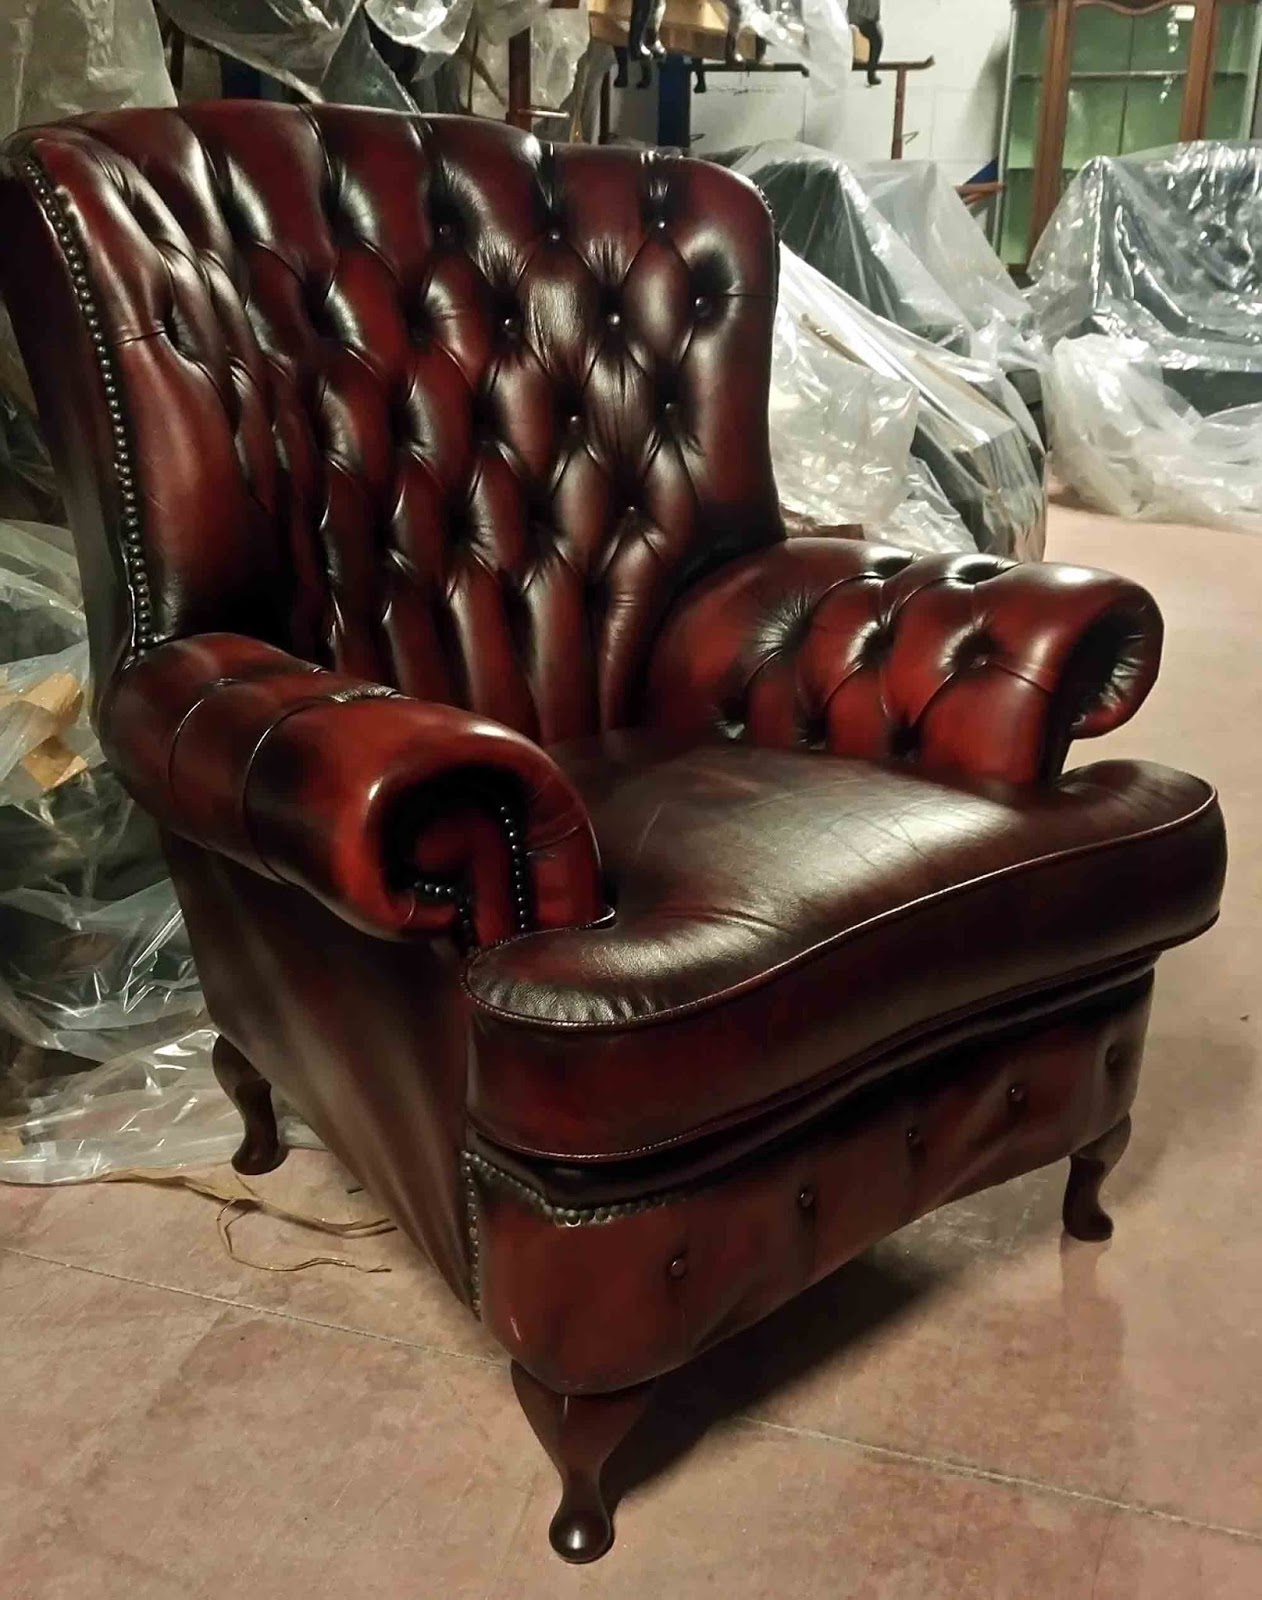 Poltrone Inglesi In Pelle.Poltrone Chesterfield Vintage Usate